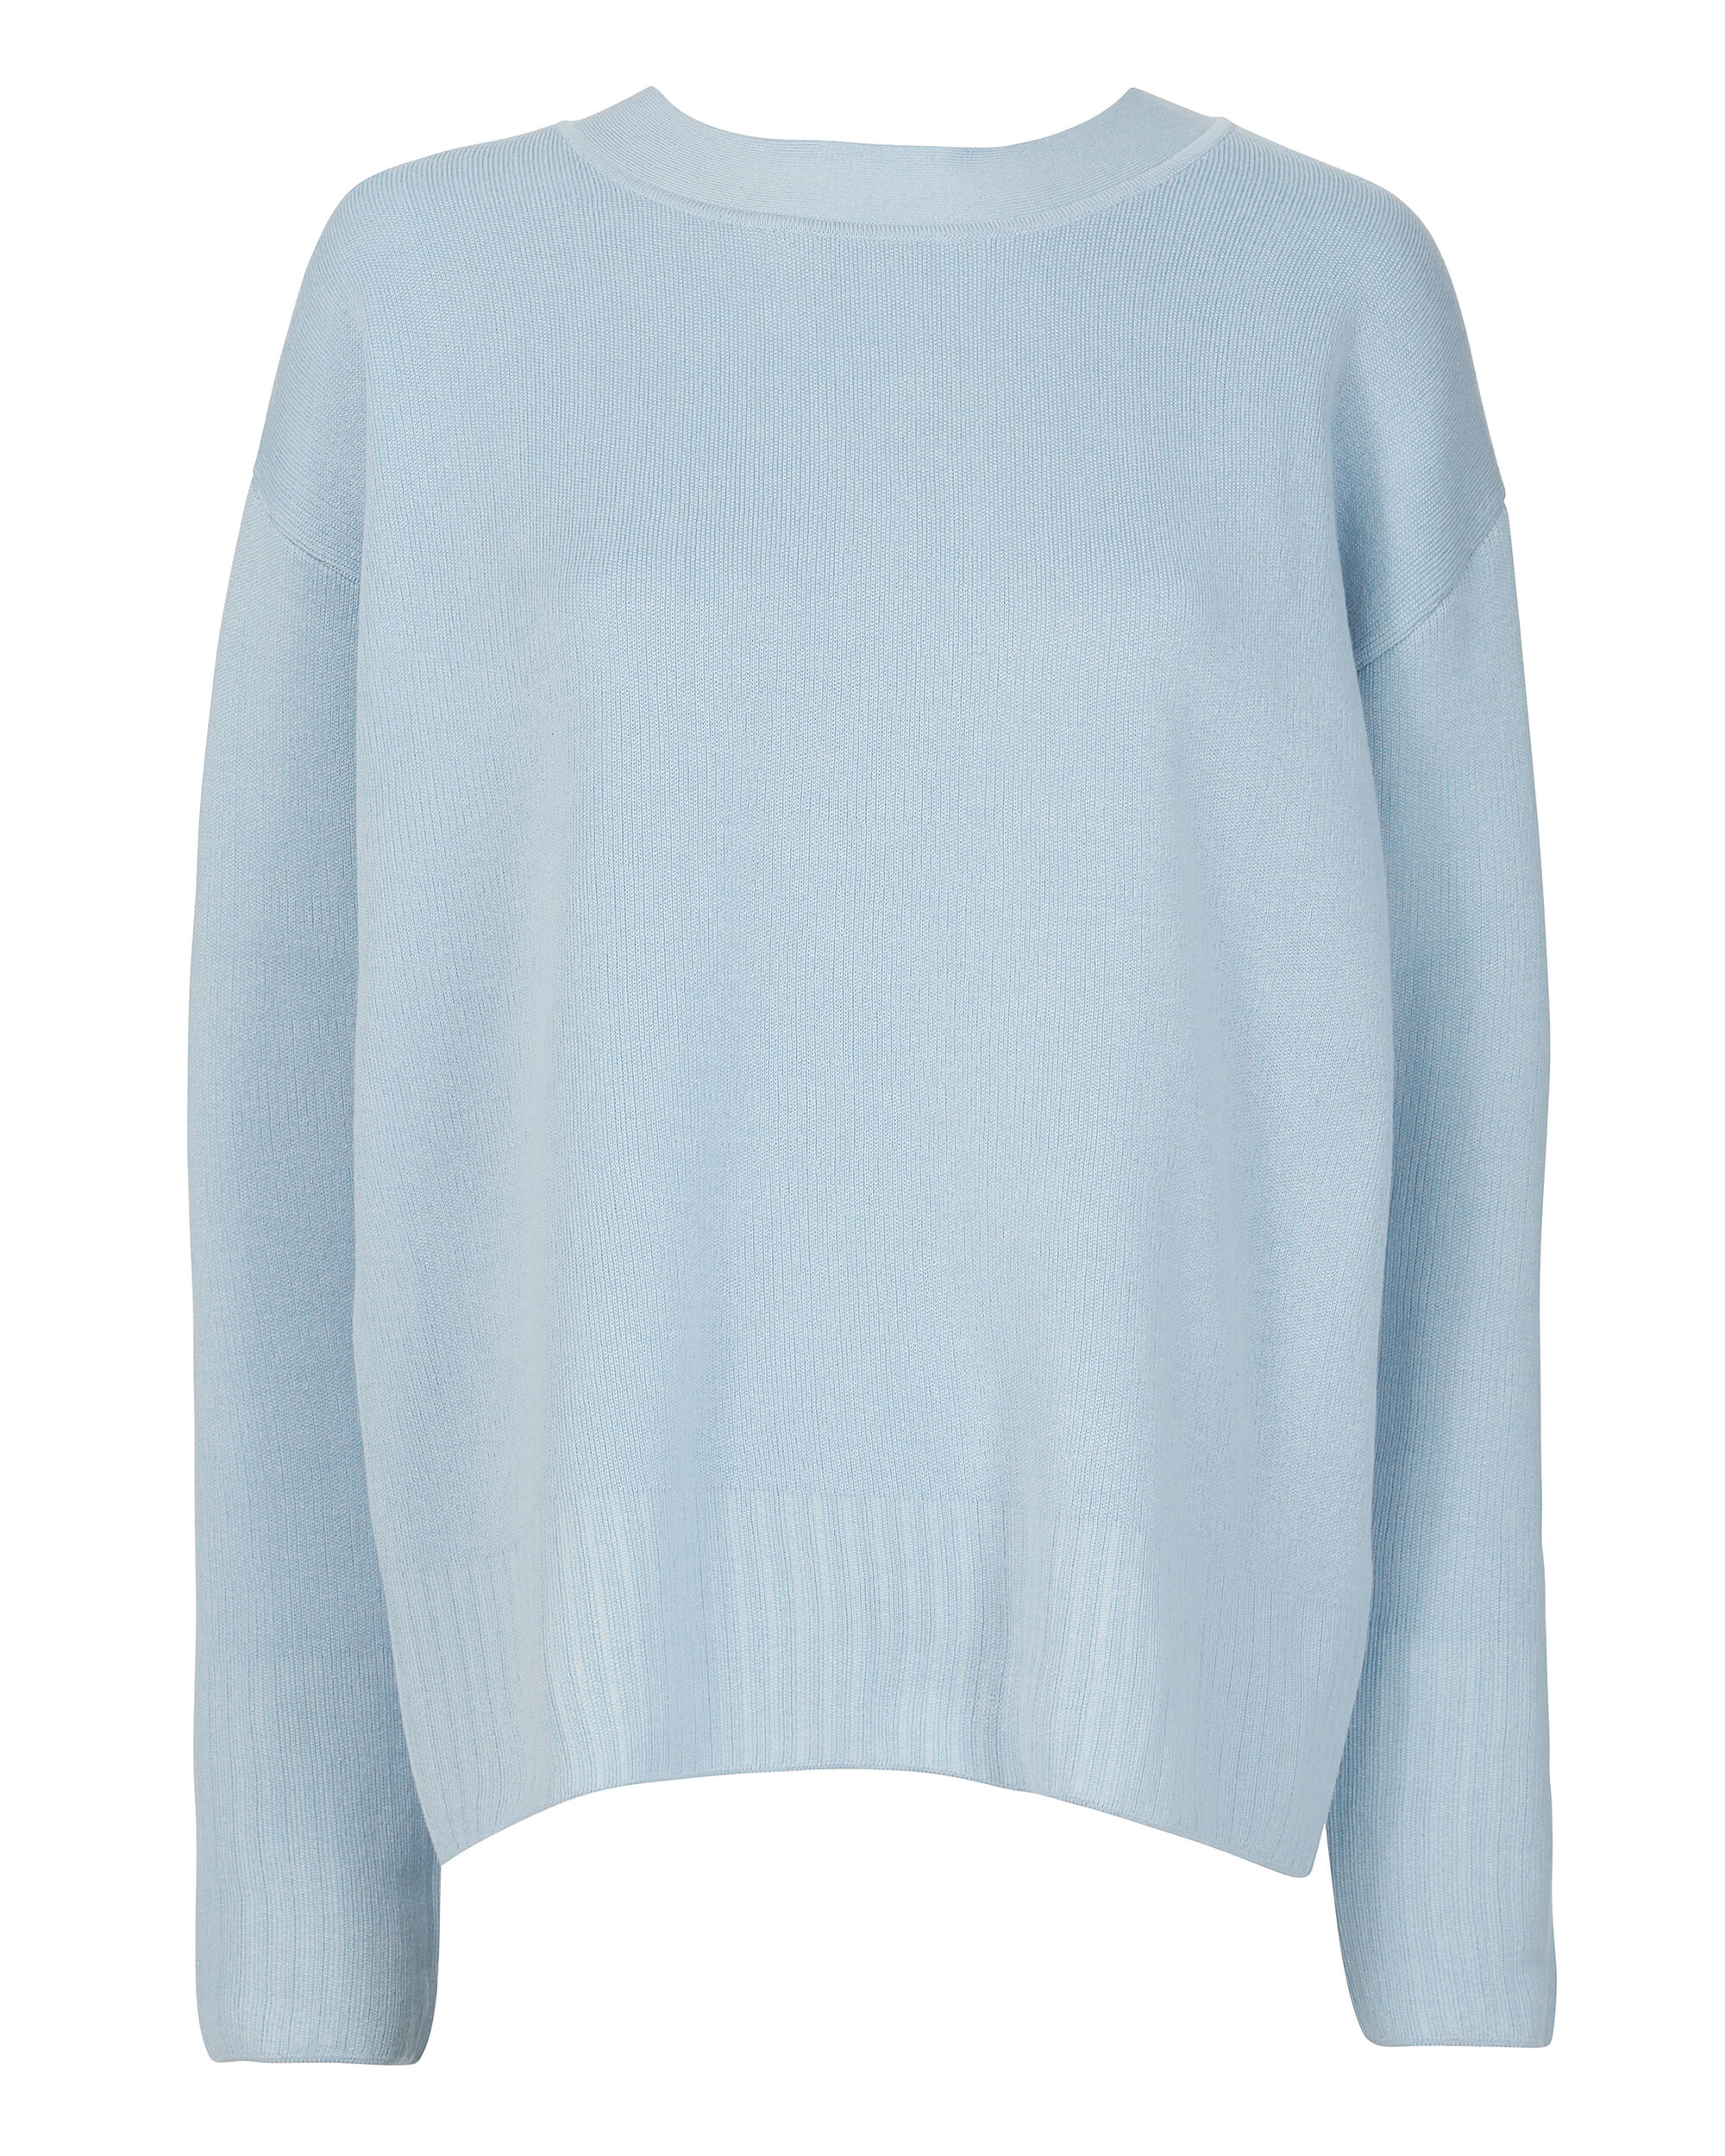 Textured Pullover Sweater, BLUE-LT, hi-res